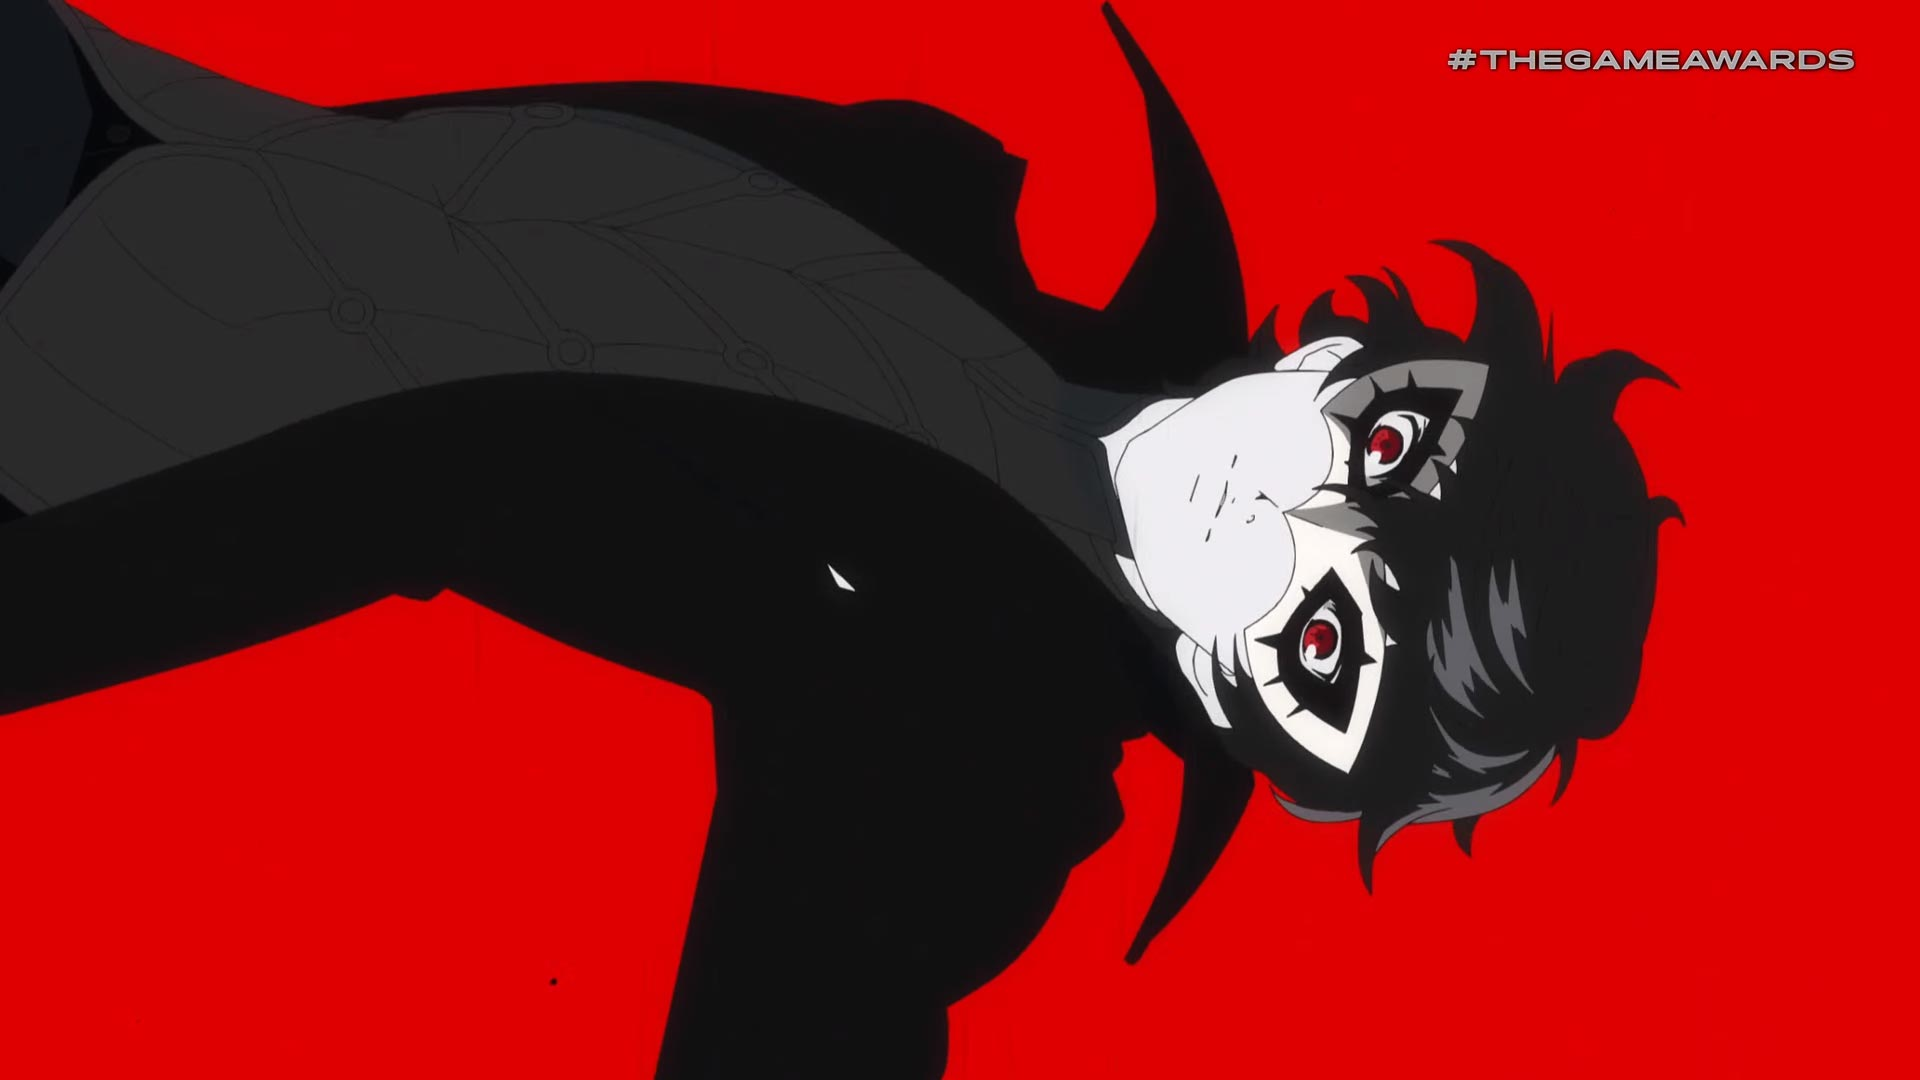 Joker from Persona 5 announced for Super Smash Bros. Ultimate 3 out of 6 image gallery